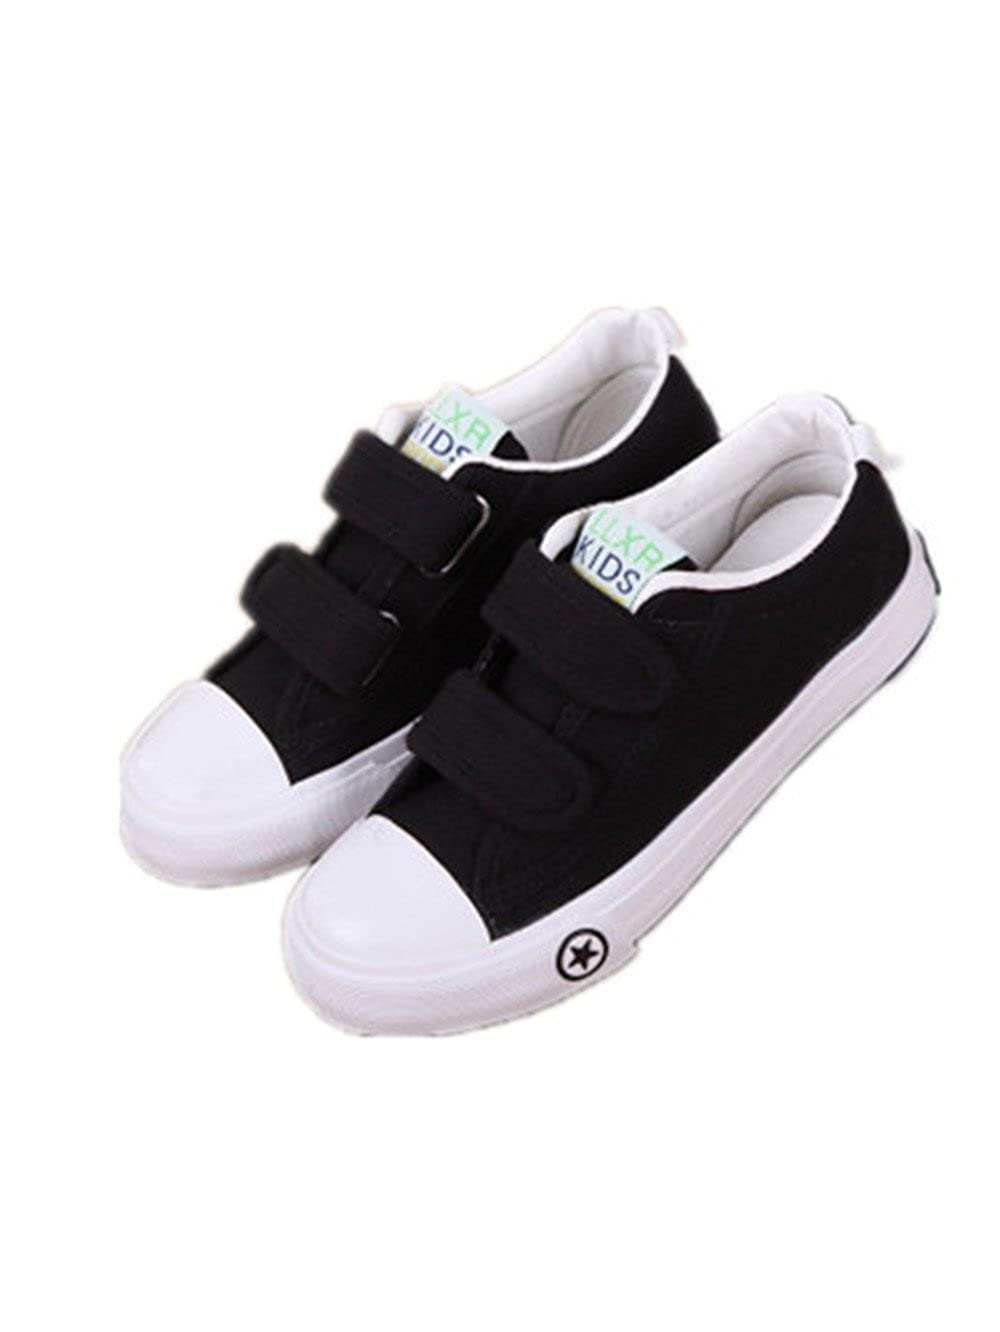 Canvas Prewalker Sneakers Soft Rubber Sole Shoes for Toddlers Boys Girls